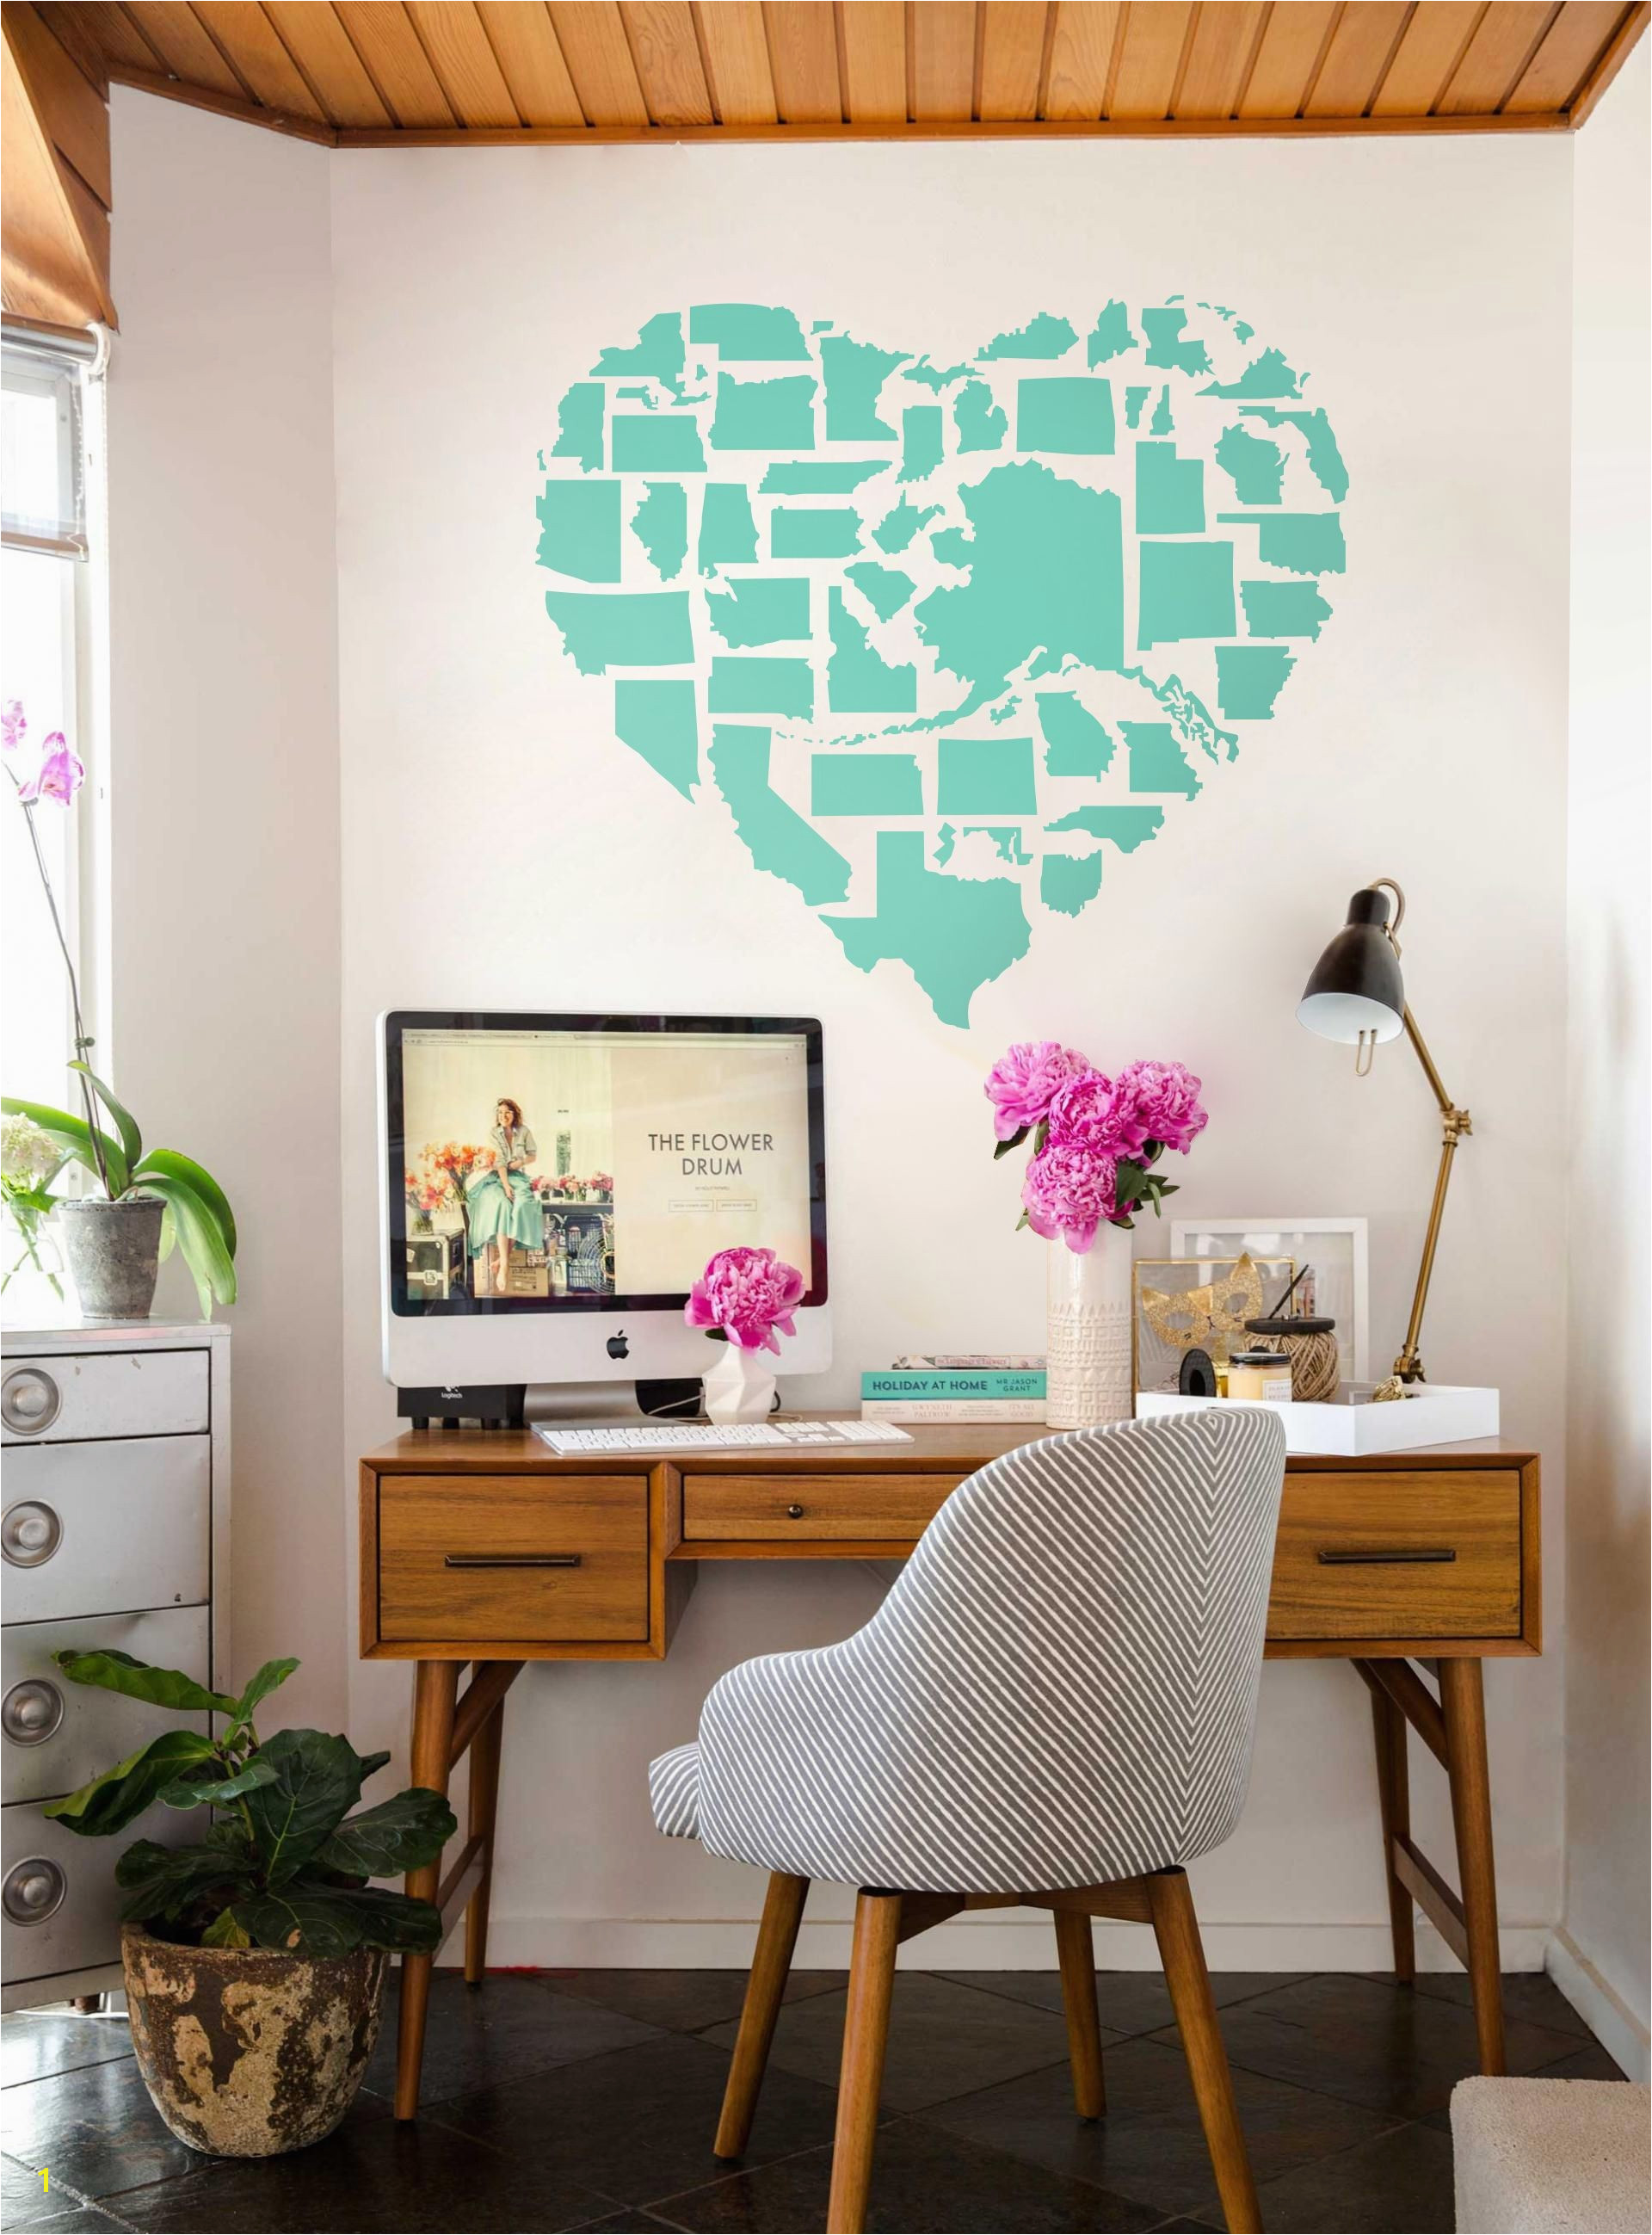 Pottery Barn Us Map Art Save Map Decal for Wall Map Wall Decal Map Sticker for